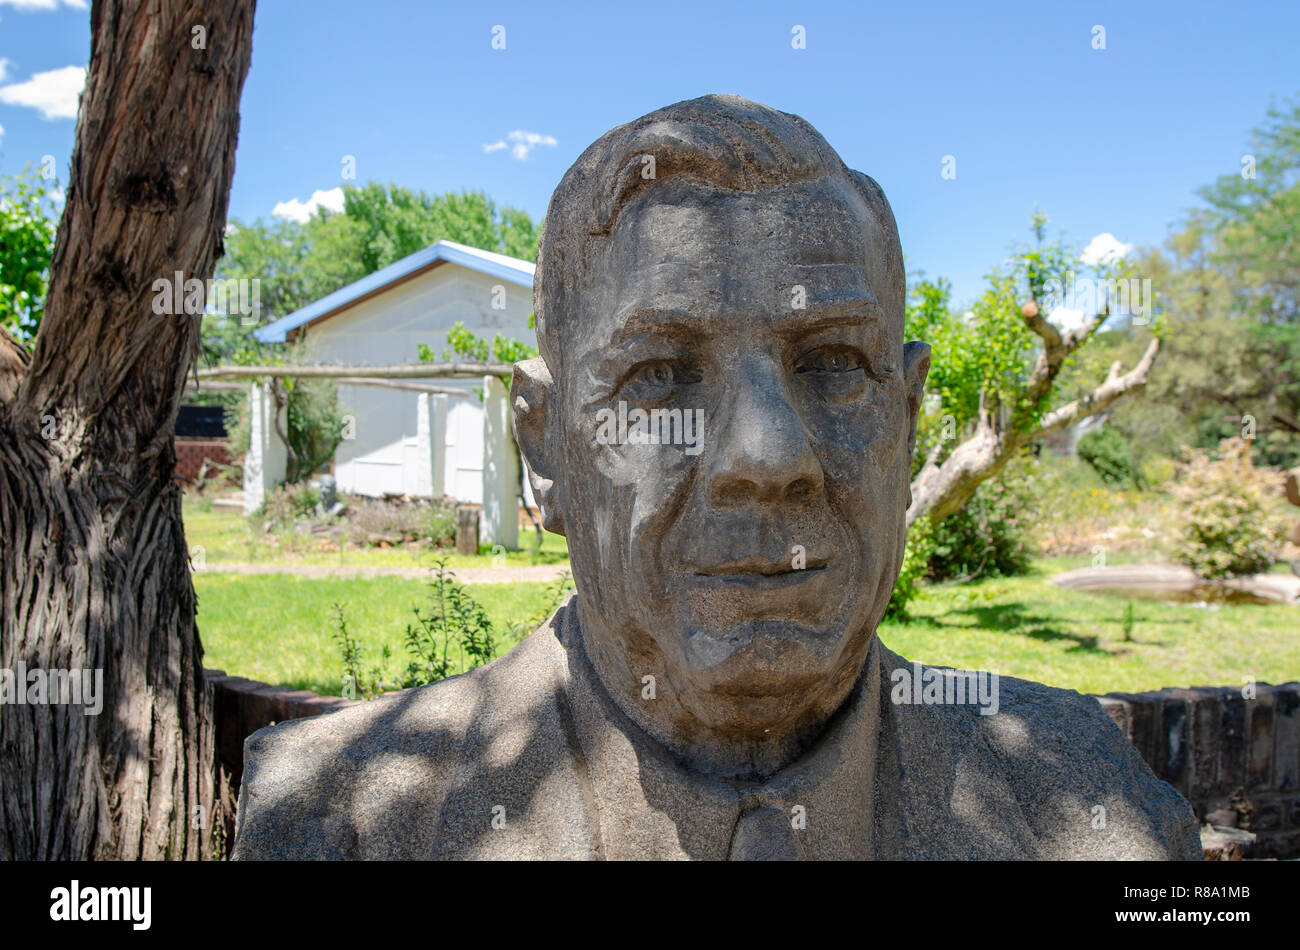 A bust of H.F. Verwoerd, the mastermind of Apartheid, is displayed near the entrance to Orania, in the Northern Cape, Friday, December 13, 2013. Orania is an Afrikaner (only) town located along the Orange River in the Karoo. Photo: Eva-Lotta Jansson - Stock Image